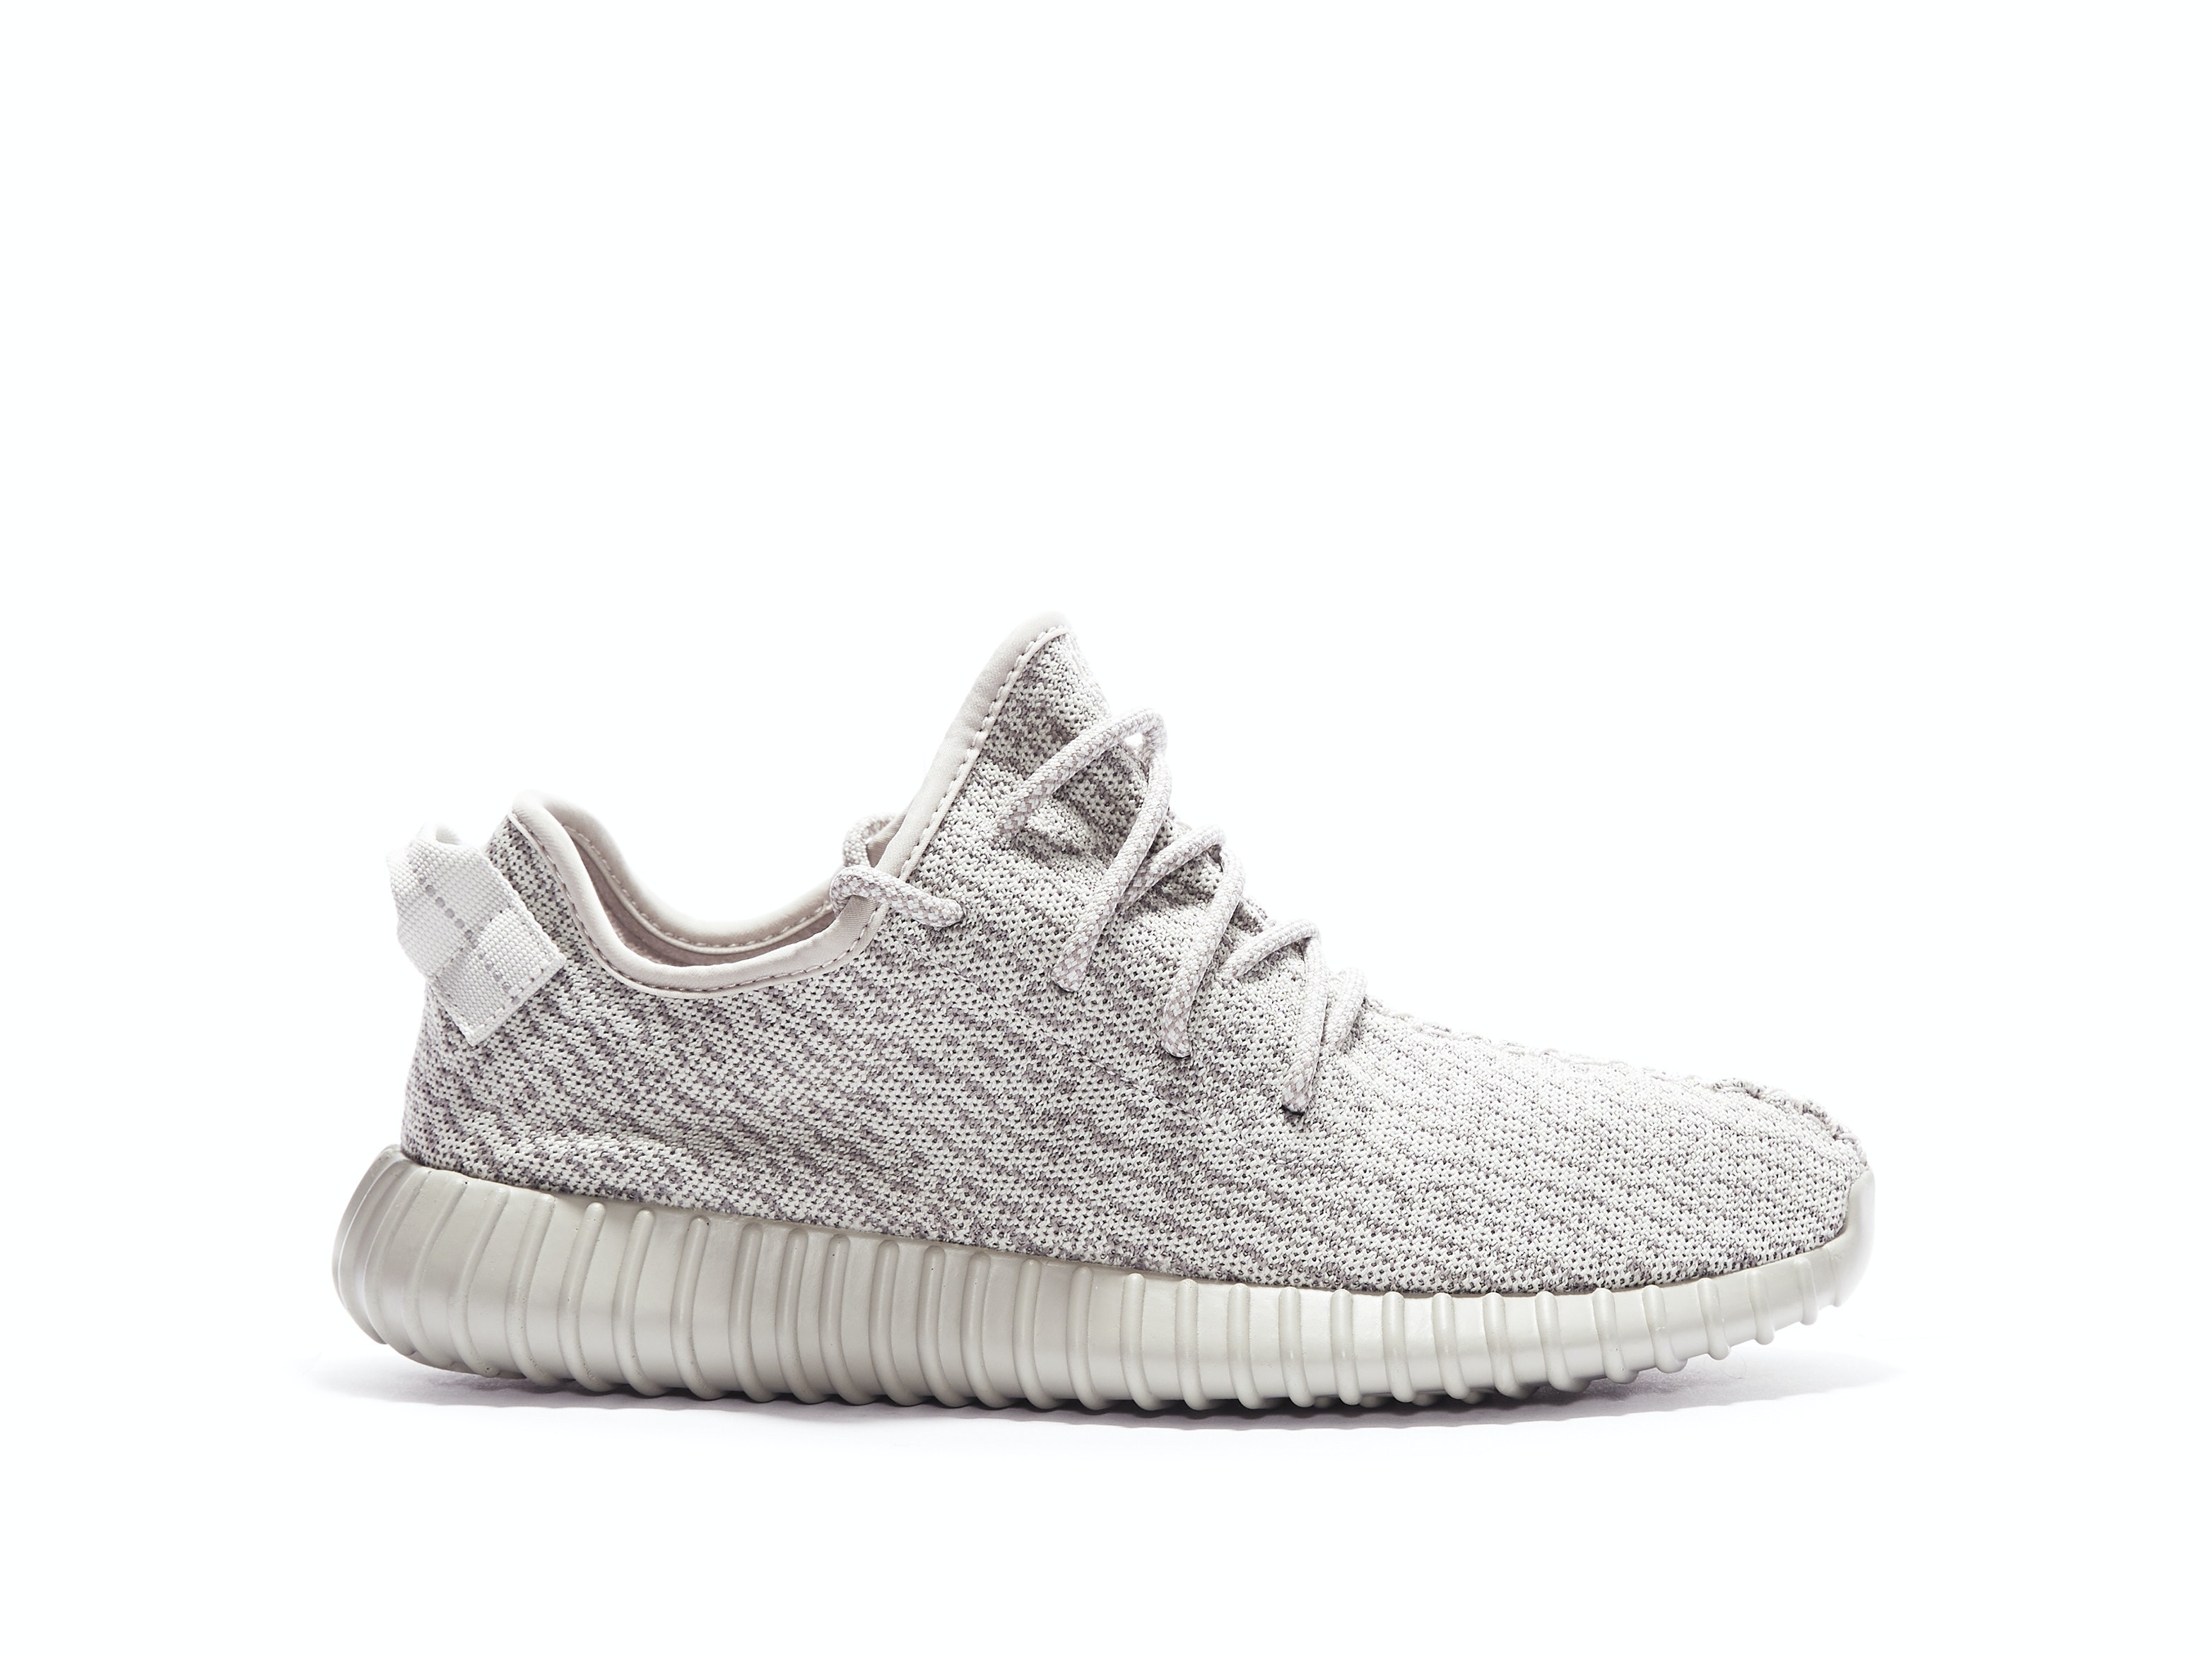 check out eff91 9ee9e Yeezy Boost 350 Moonrock. 100% AuthenticAvg Delivery Time  1-2 days